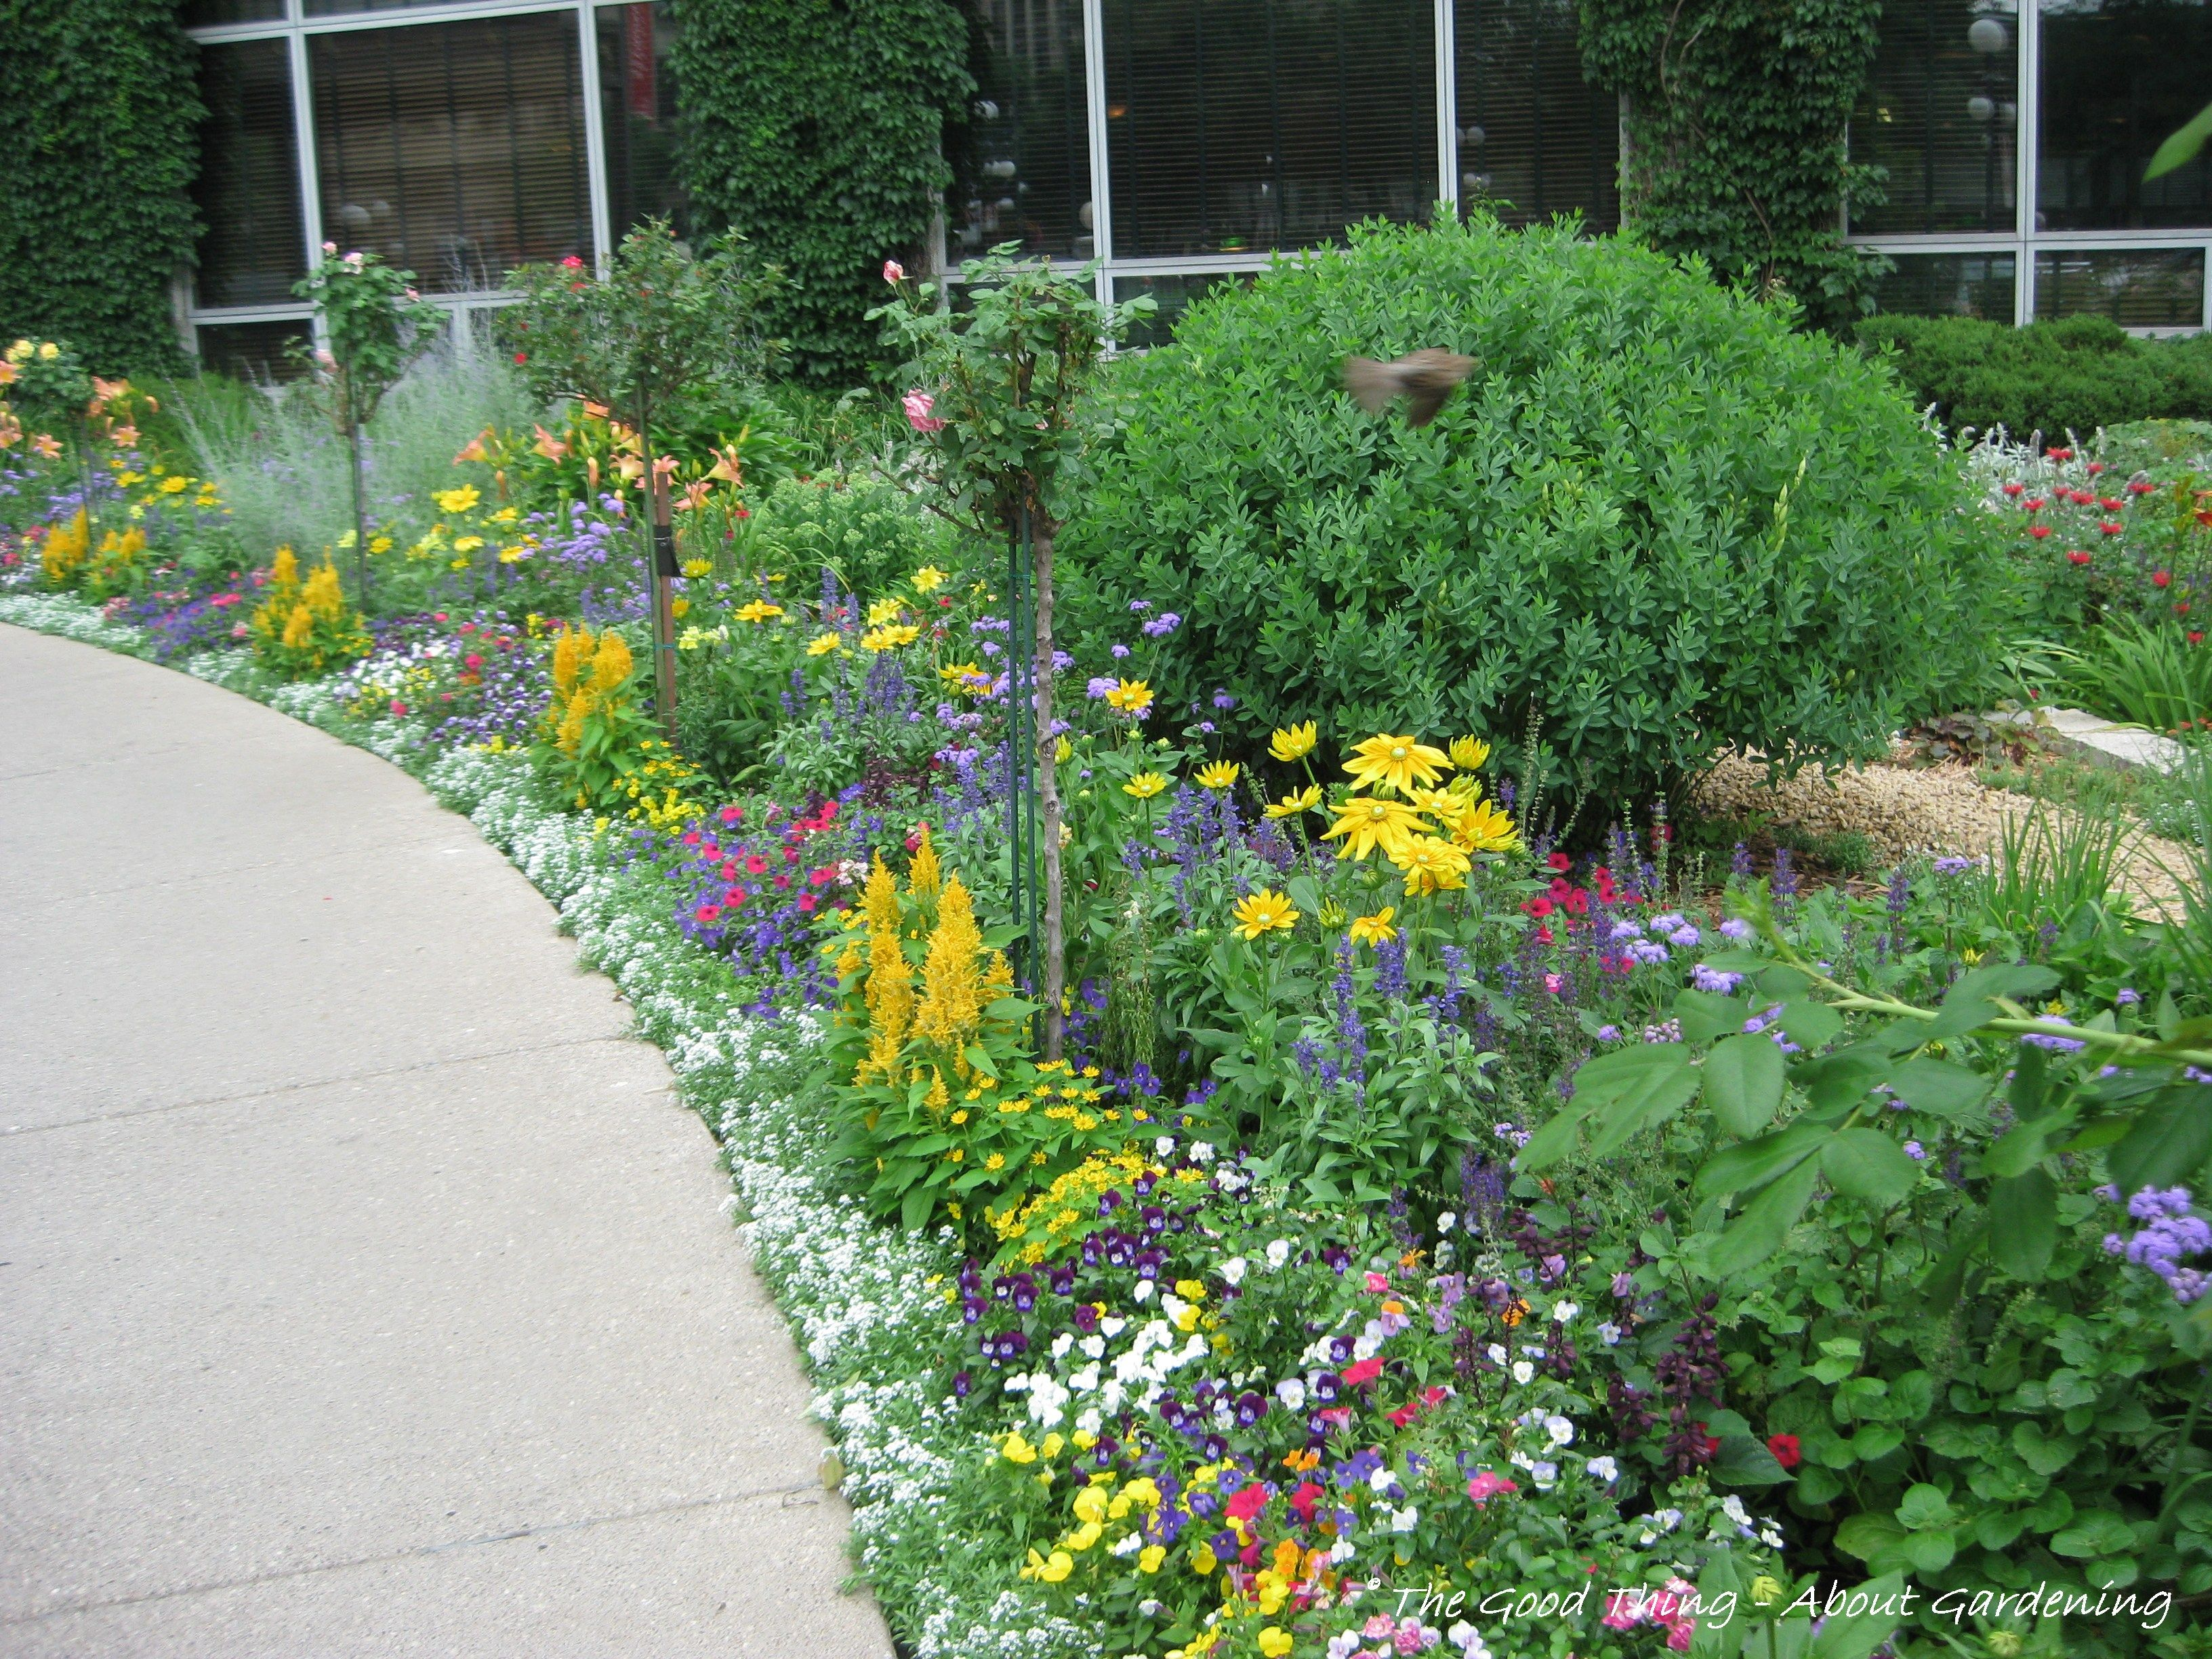 Garden Edging Next To Sidewalk | Flower Gardens Include Annuals To Add  Color And Summer Blooming